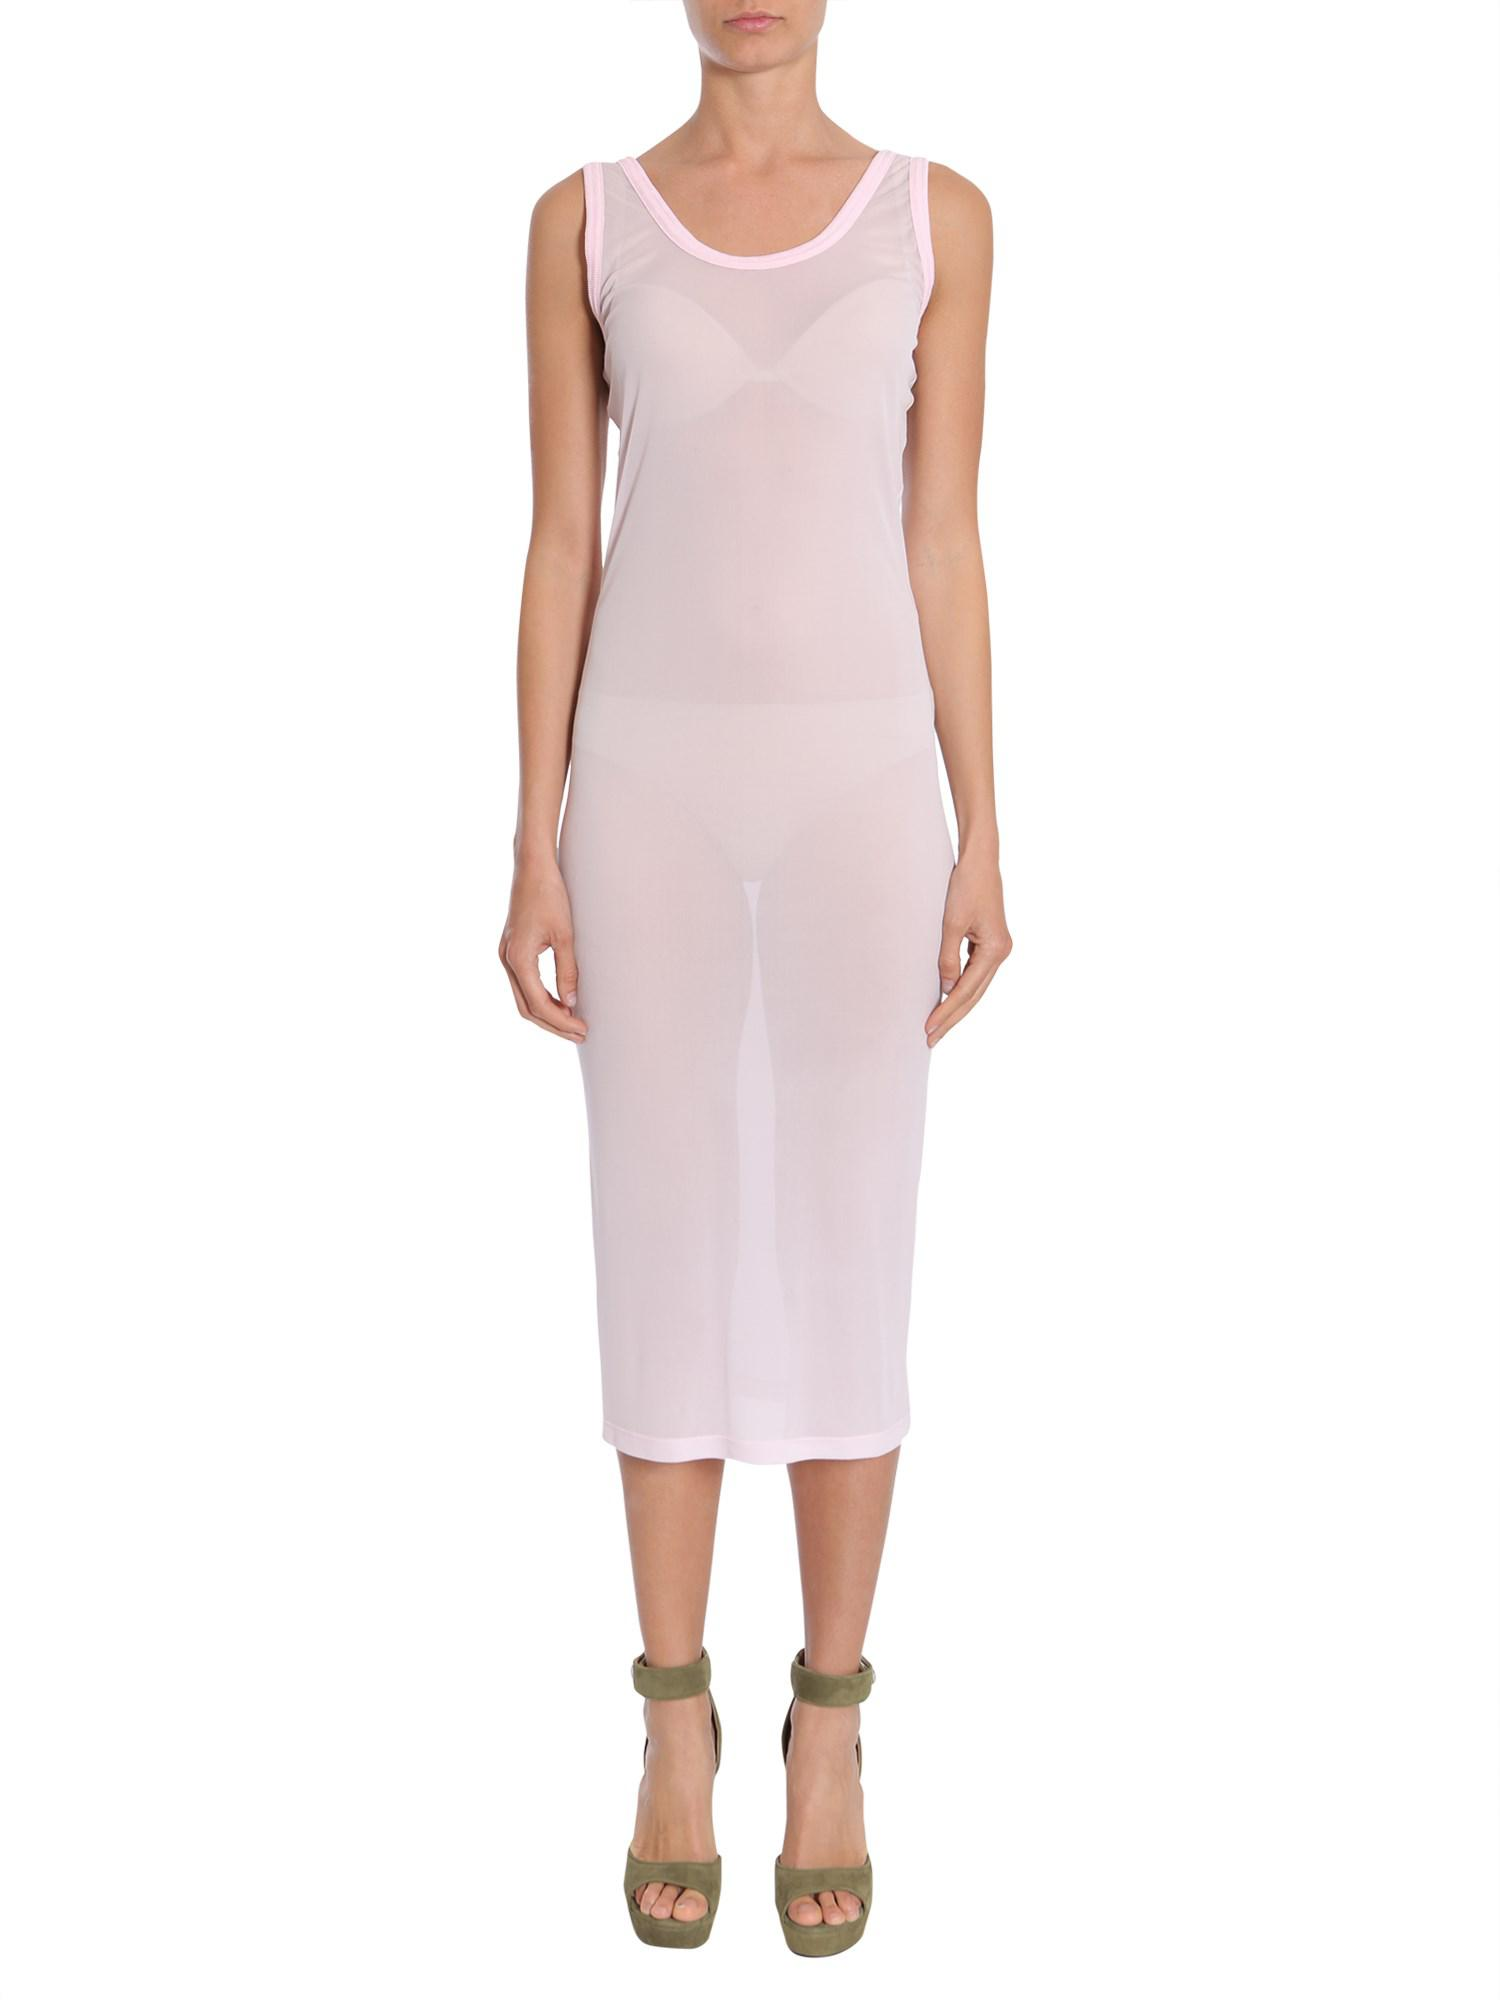 Free Shipping Best Wholesale Sleeveless jersey dress Givenchy Discount Best Place Cheap Wholesale kSrIsh